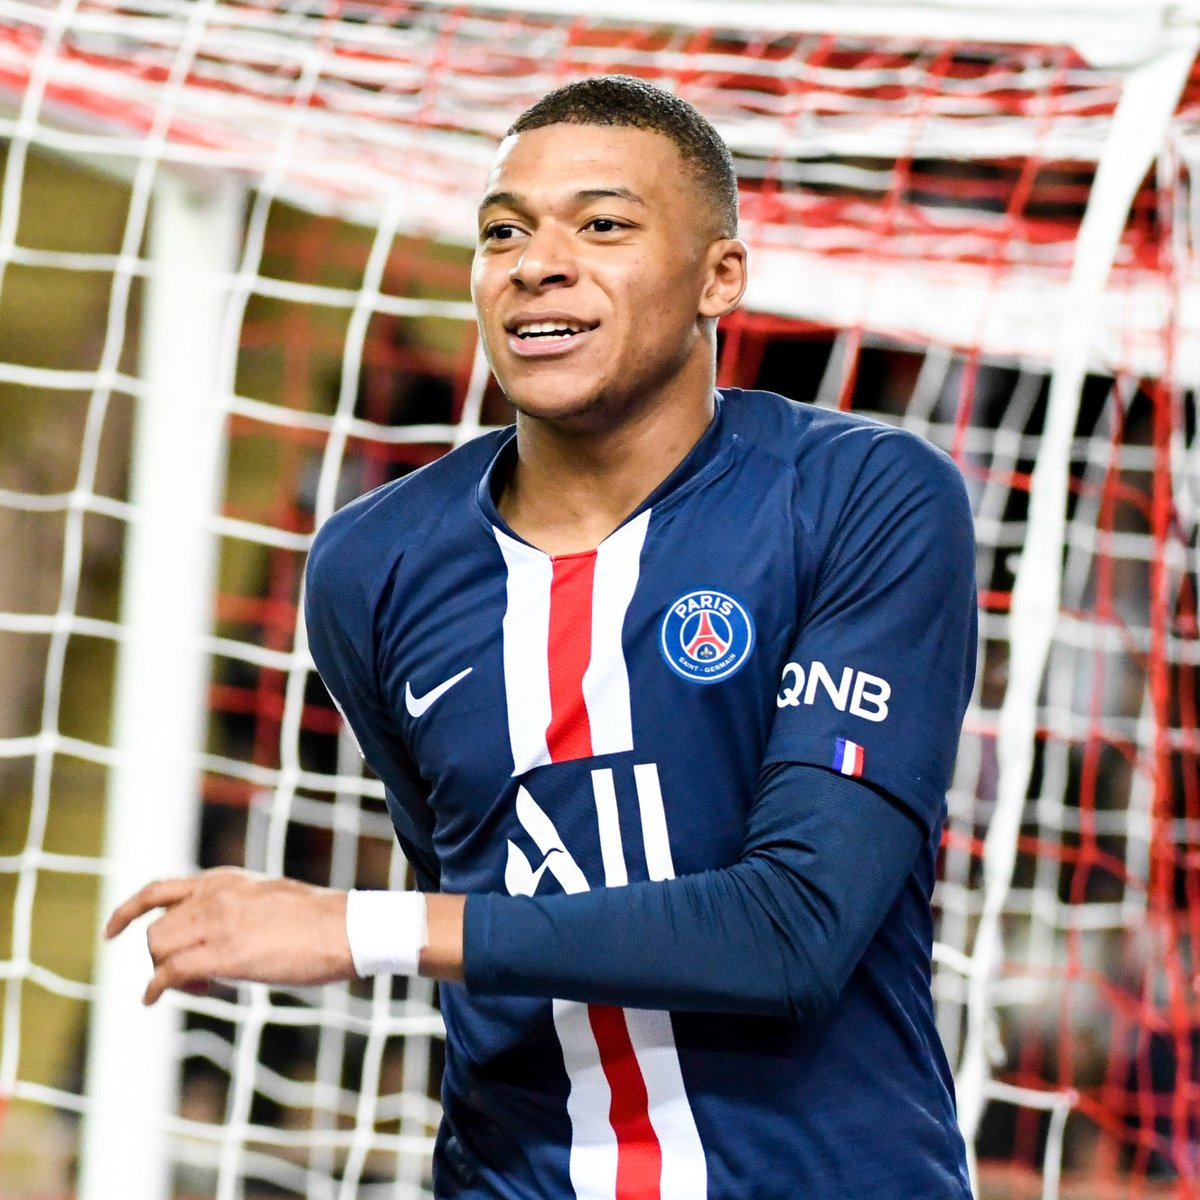 🔴🔵 Kylian Mbappé in all competitions for club & country this season = 🔥🔥🔥  ⚽2⃣3⃣ 👕2⃣1⃣  #UCL